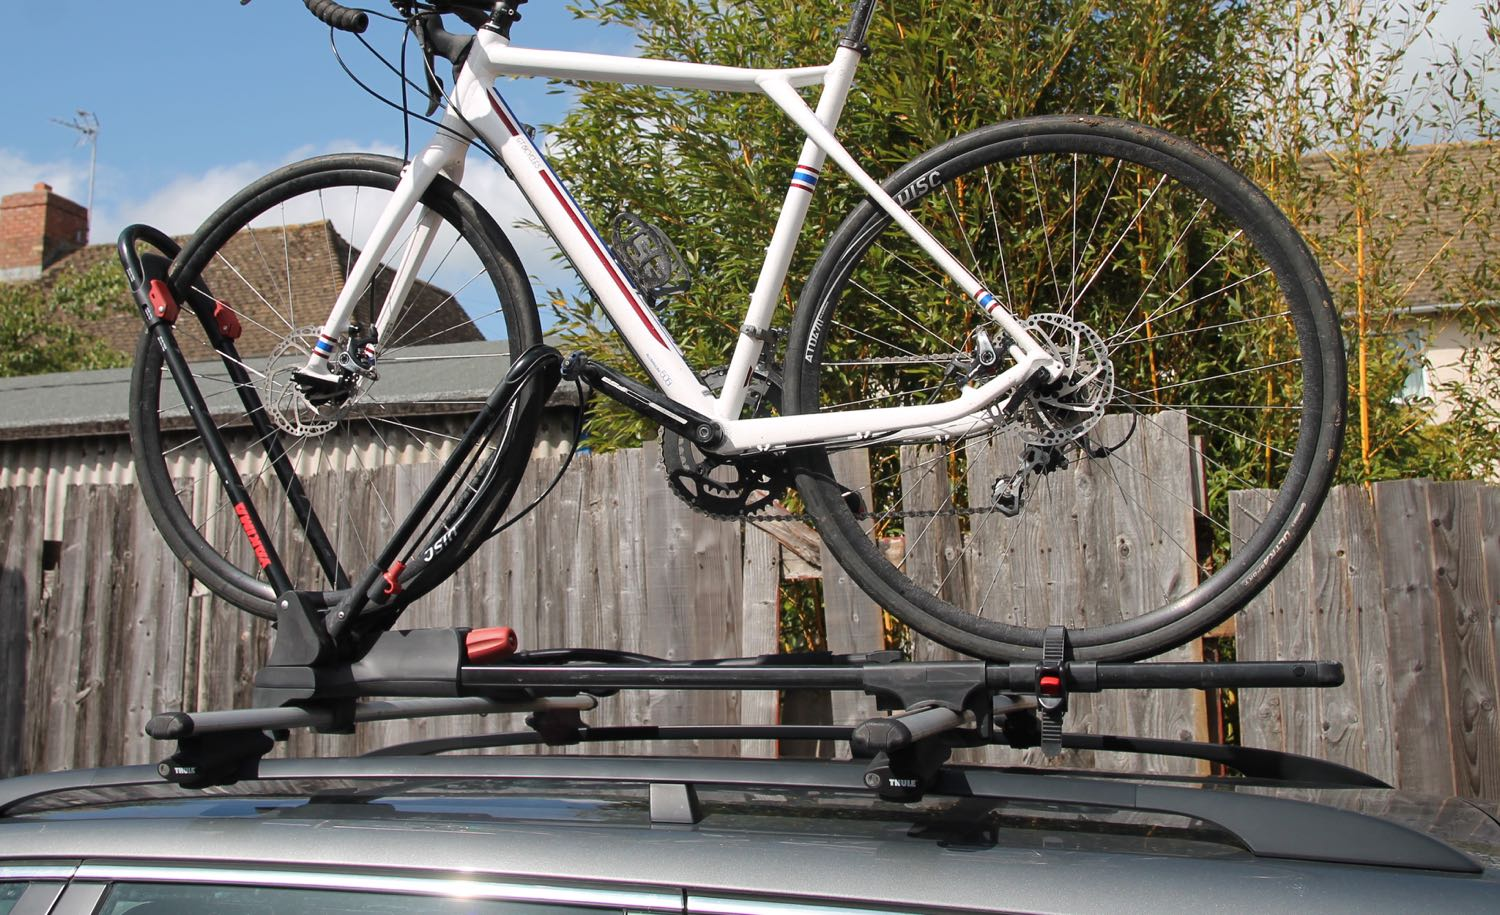 The Yakima FrontLoader Bike Carrier Is Really Easy To Use, Holding The  Bicycle Securely By The Front Wheel And Avoiding Potential Frame Damage.